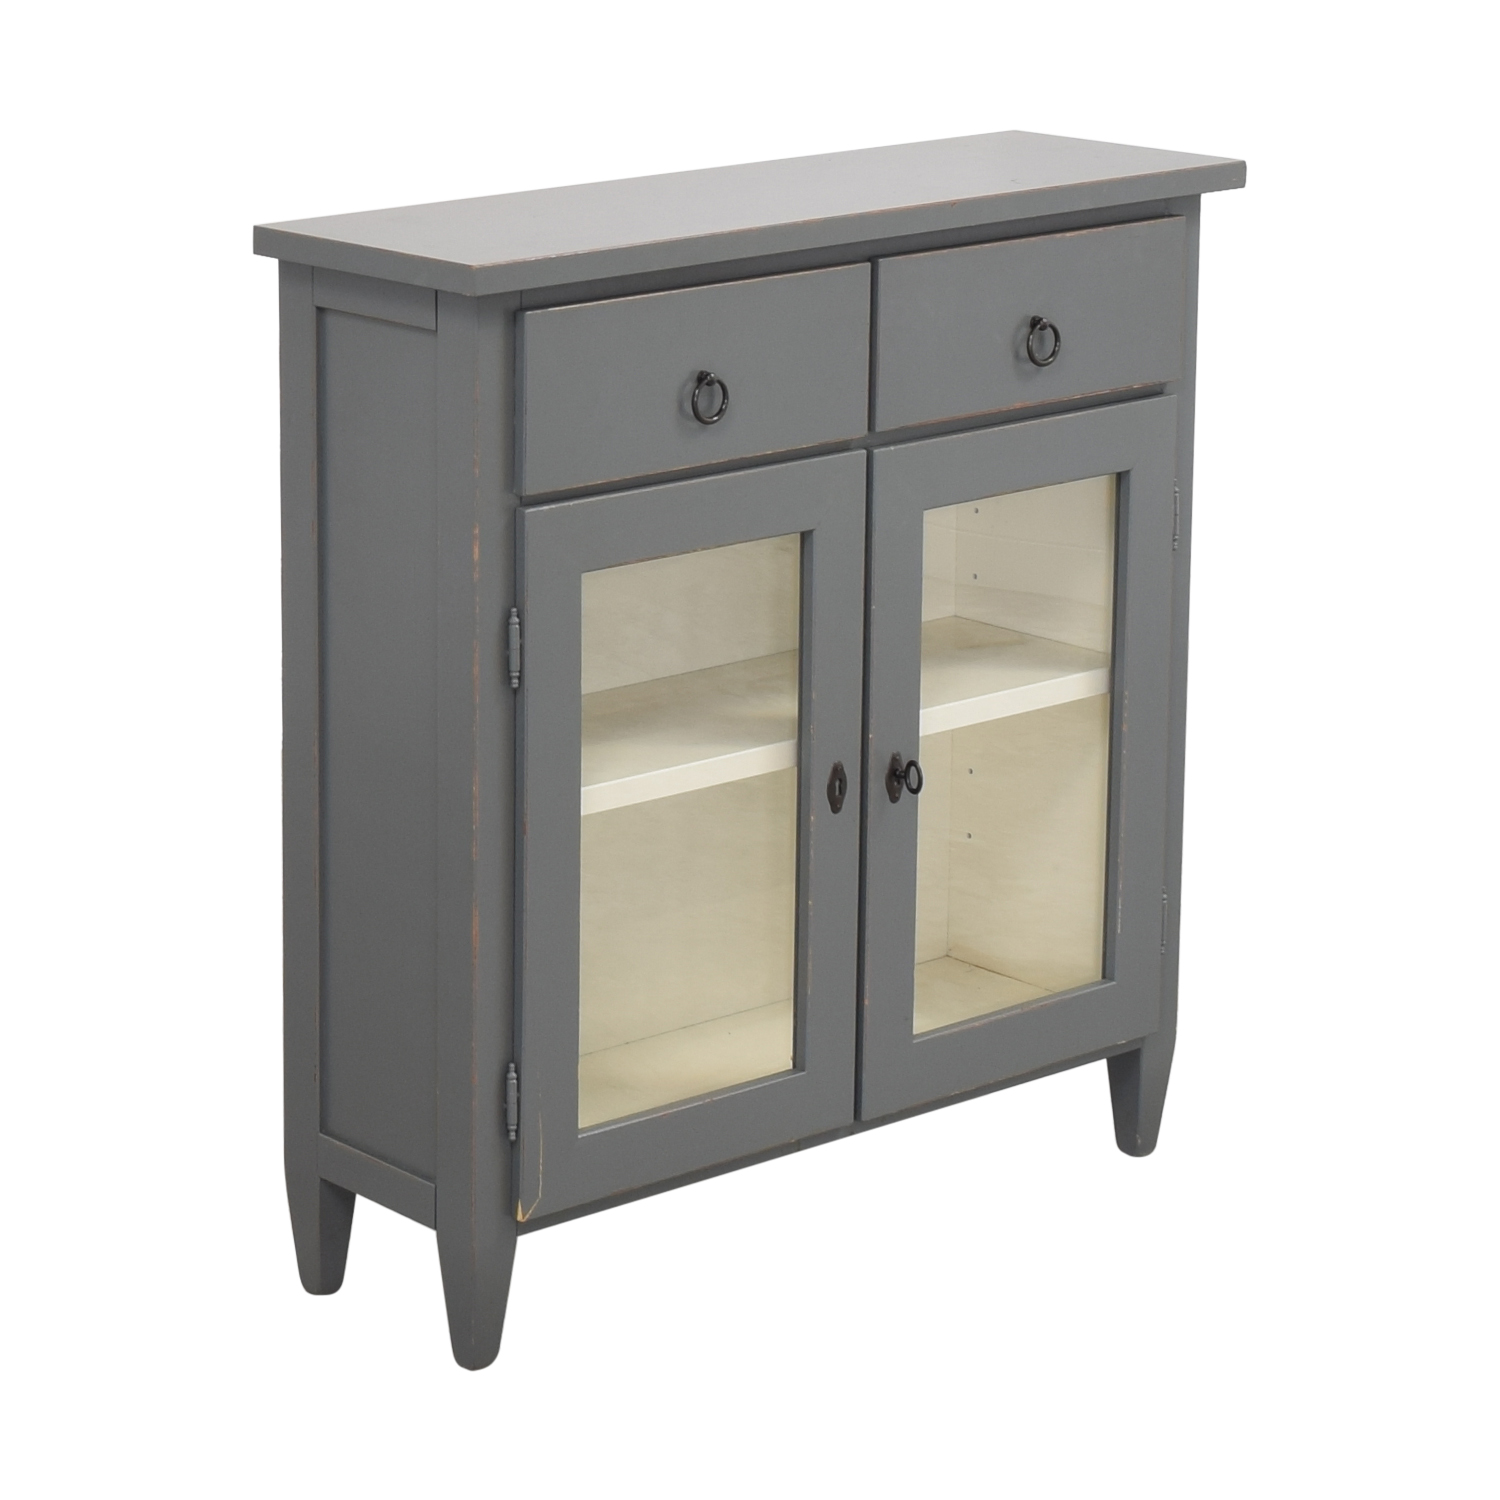 Crate & Barrel Crate & Barrel Stretto Grey Entryway Cabinet for sale